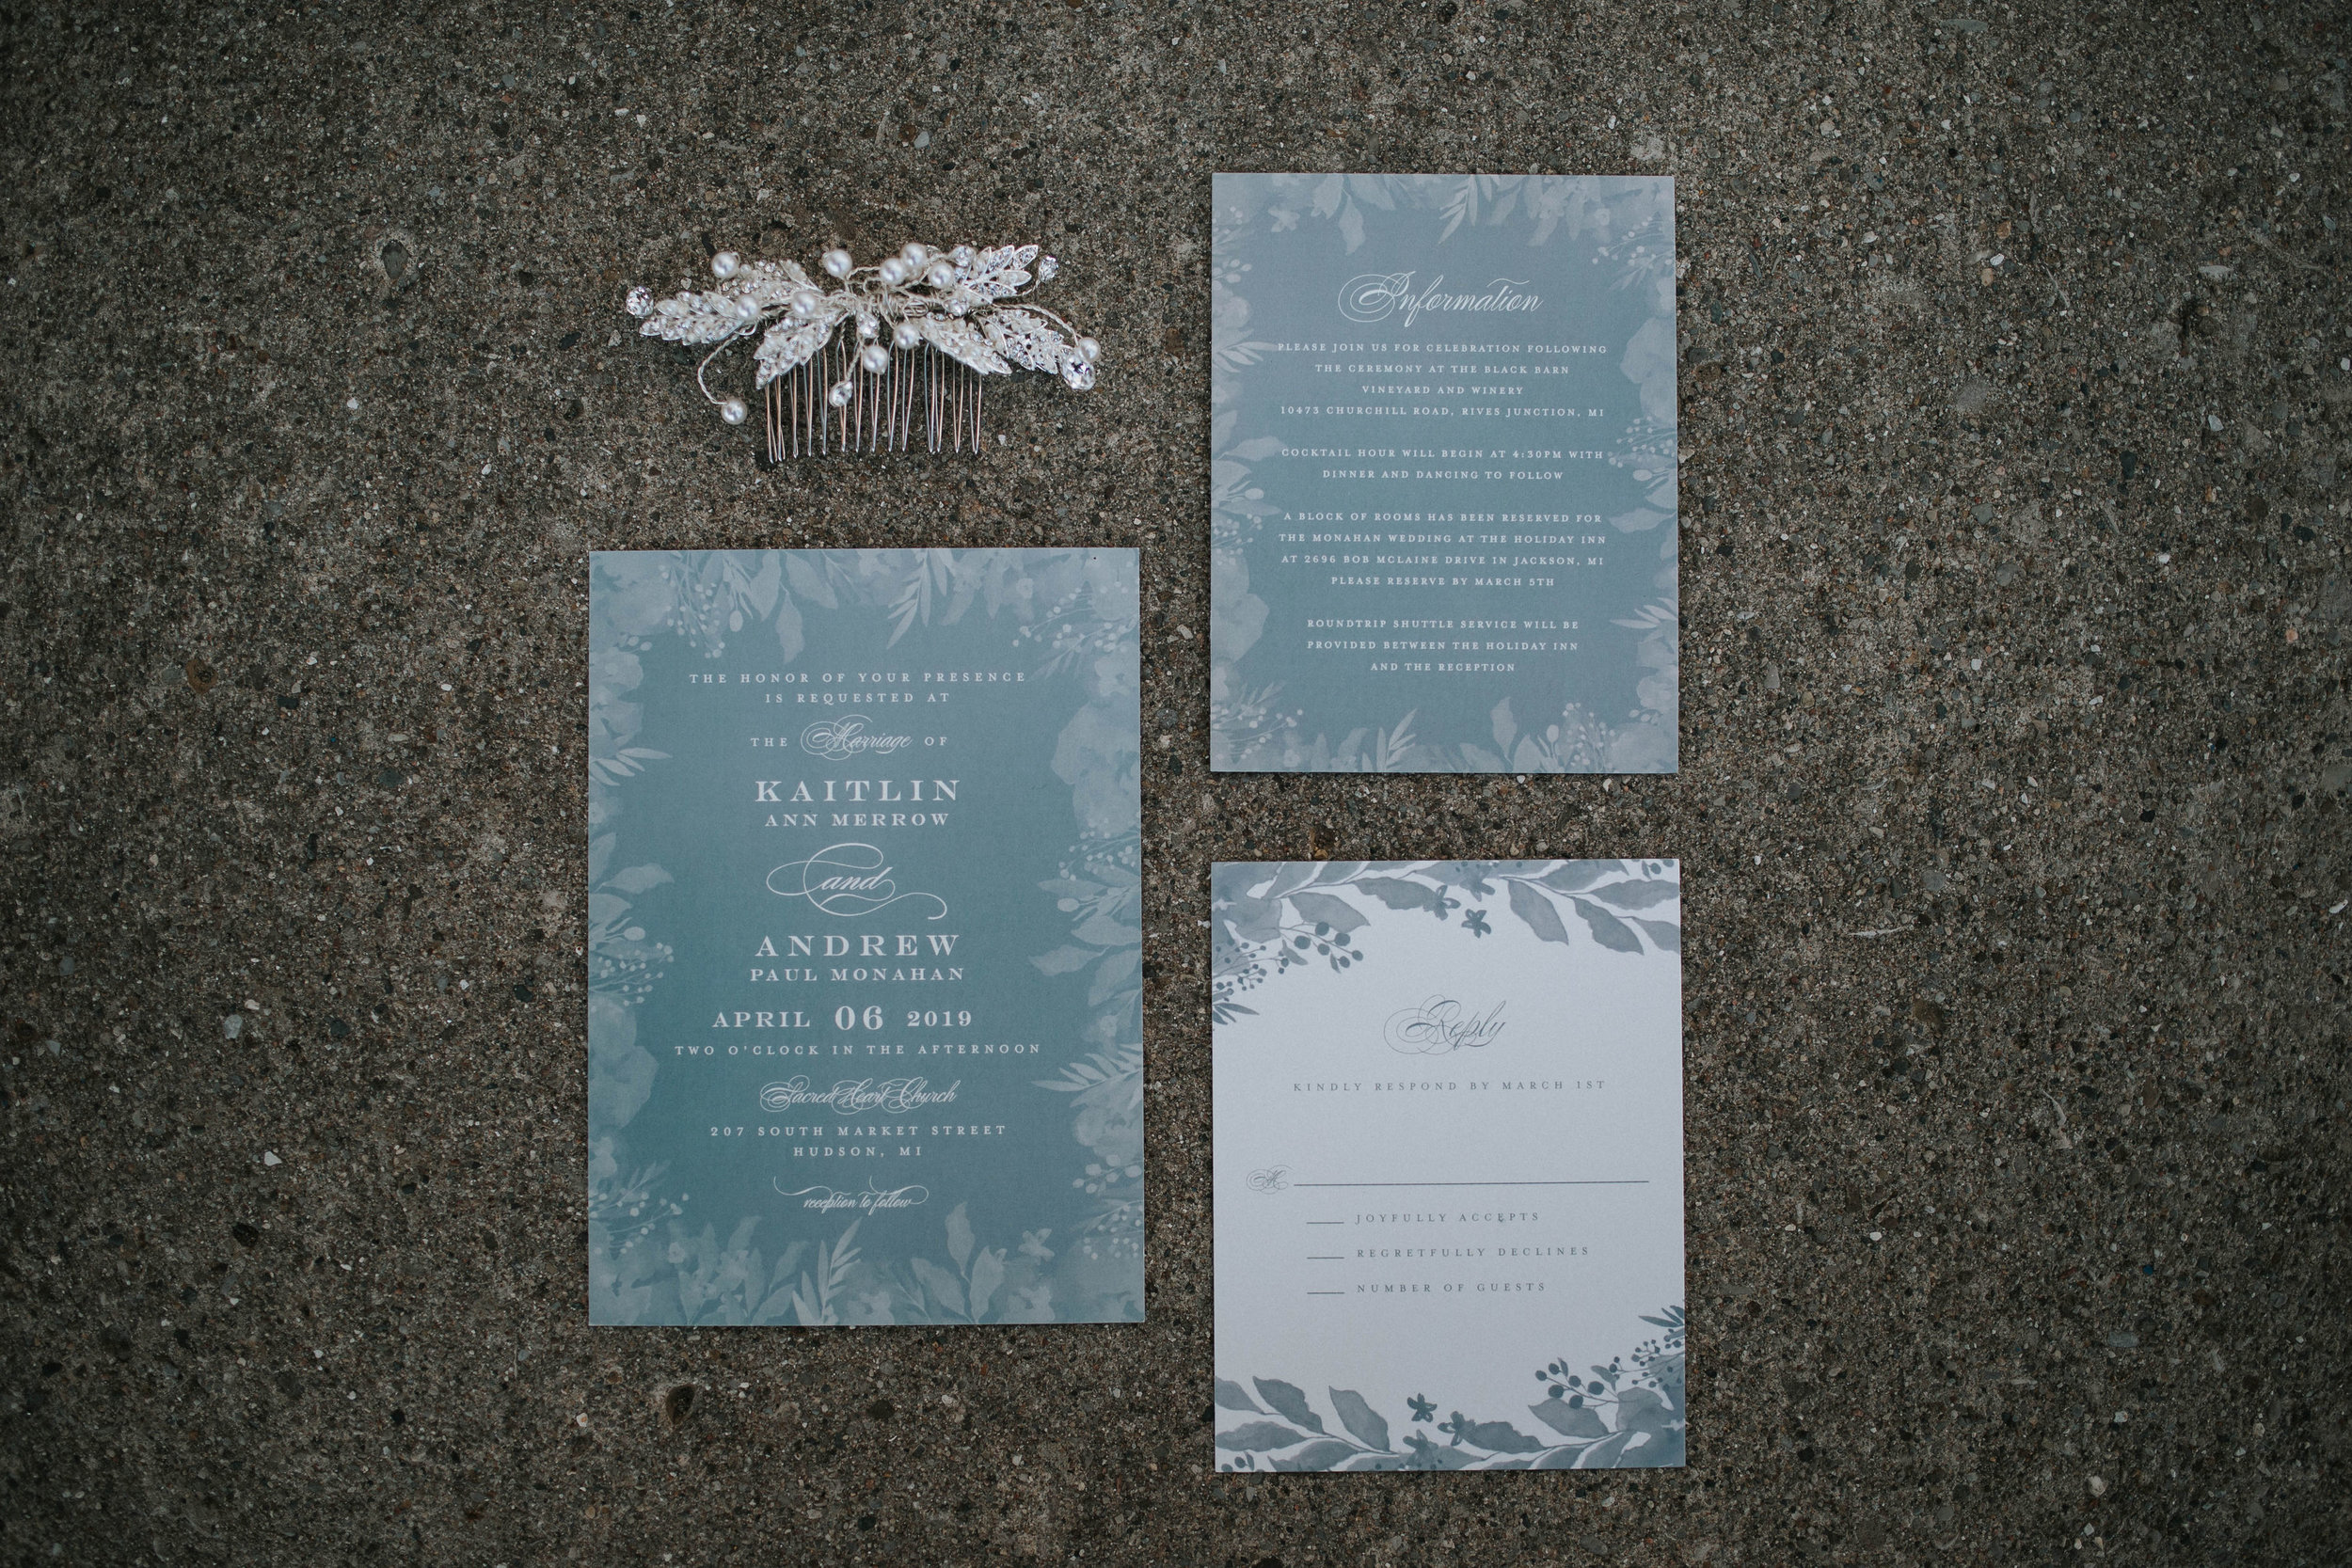 Who doesn't love a good flat lay? Kaitlin's hair clip was the perfect addition to the invitation suite.